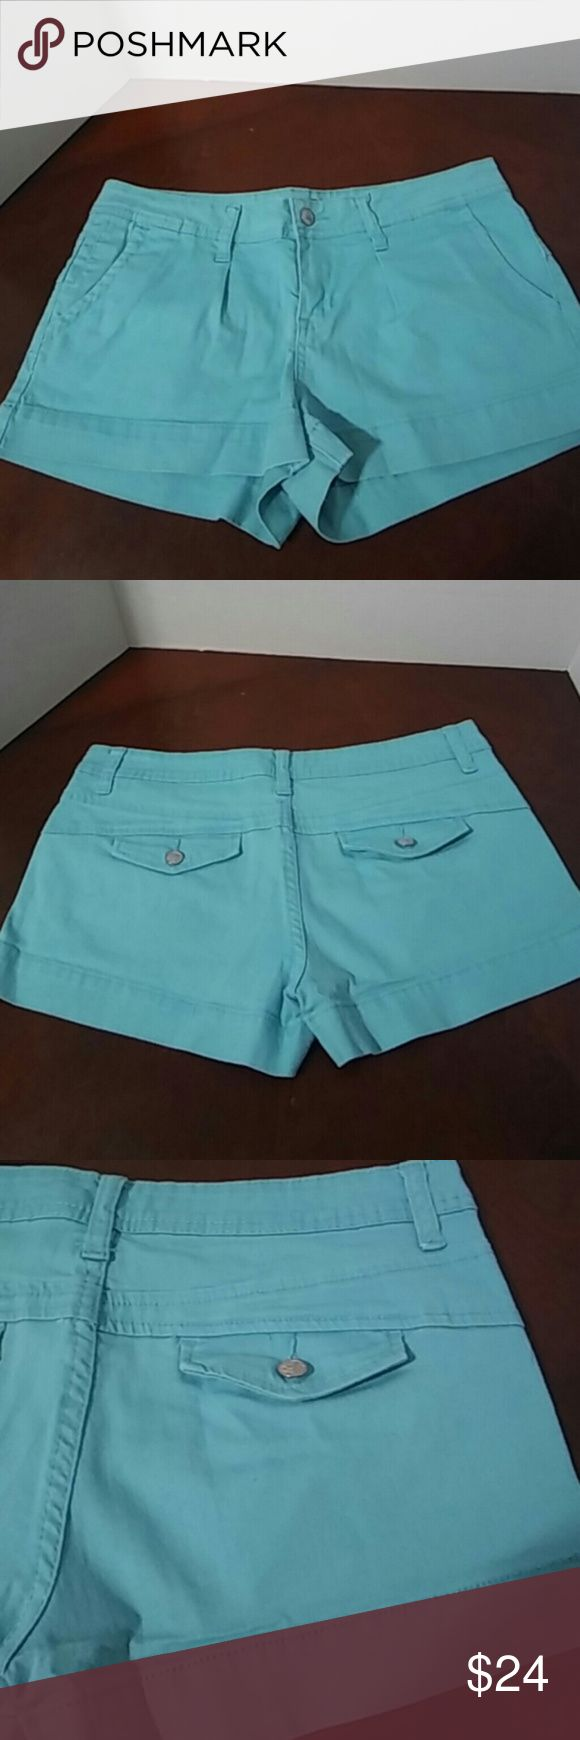 Sz 7 American Rag shorts Super cute and a perfect wardrobe staple! Excellent condition! Aqua shorts made by American Rag. Single pleat style on the front. Size 7. No rips, tears, or stains.... From a smoke-free, dog friendly home, No trades and no off-site transactions! American Rag Shorts